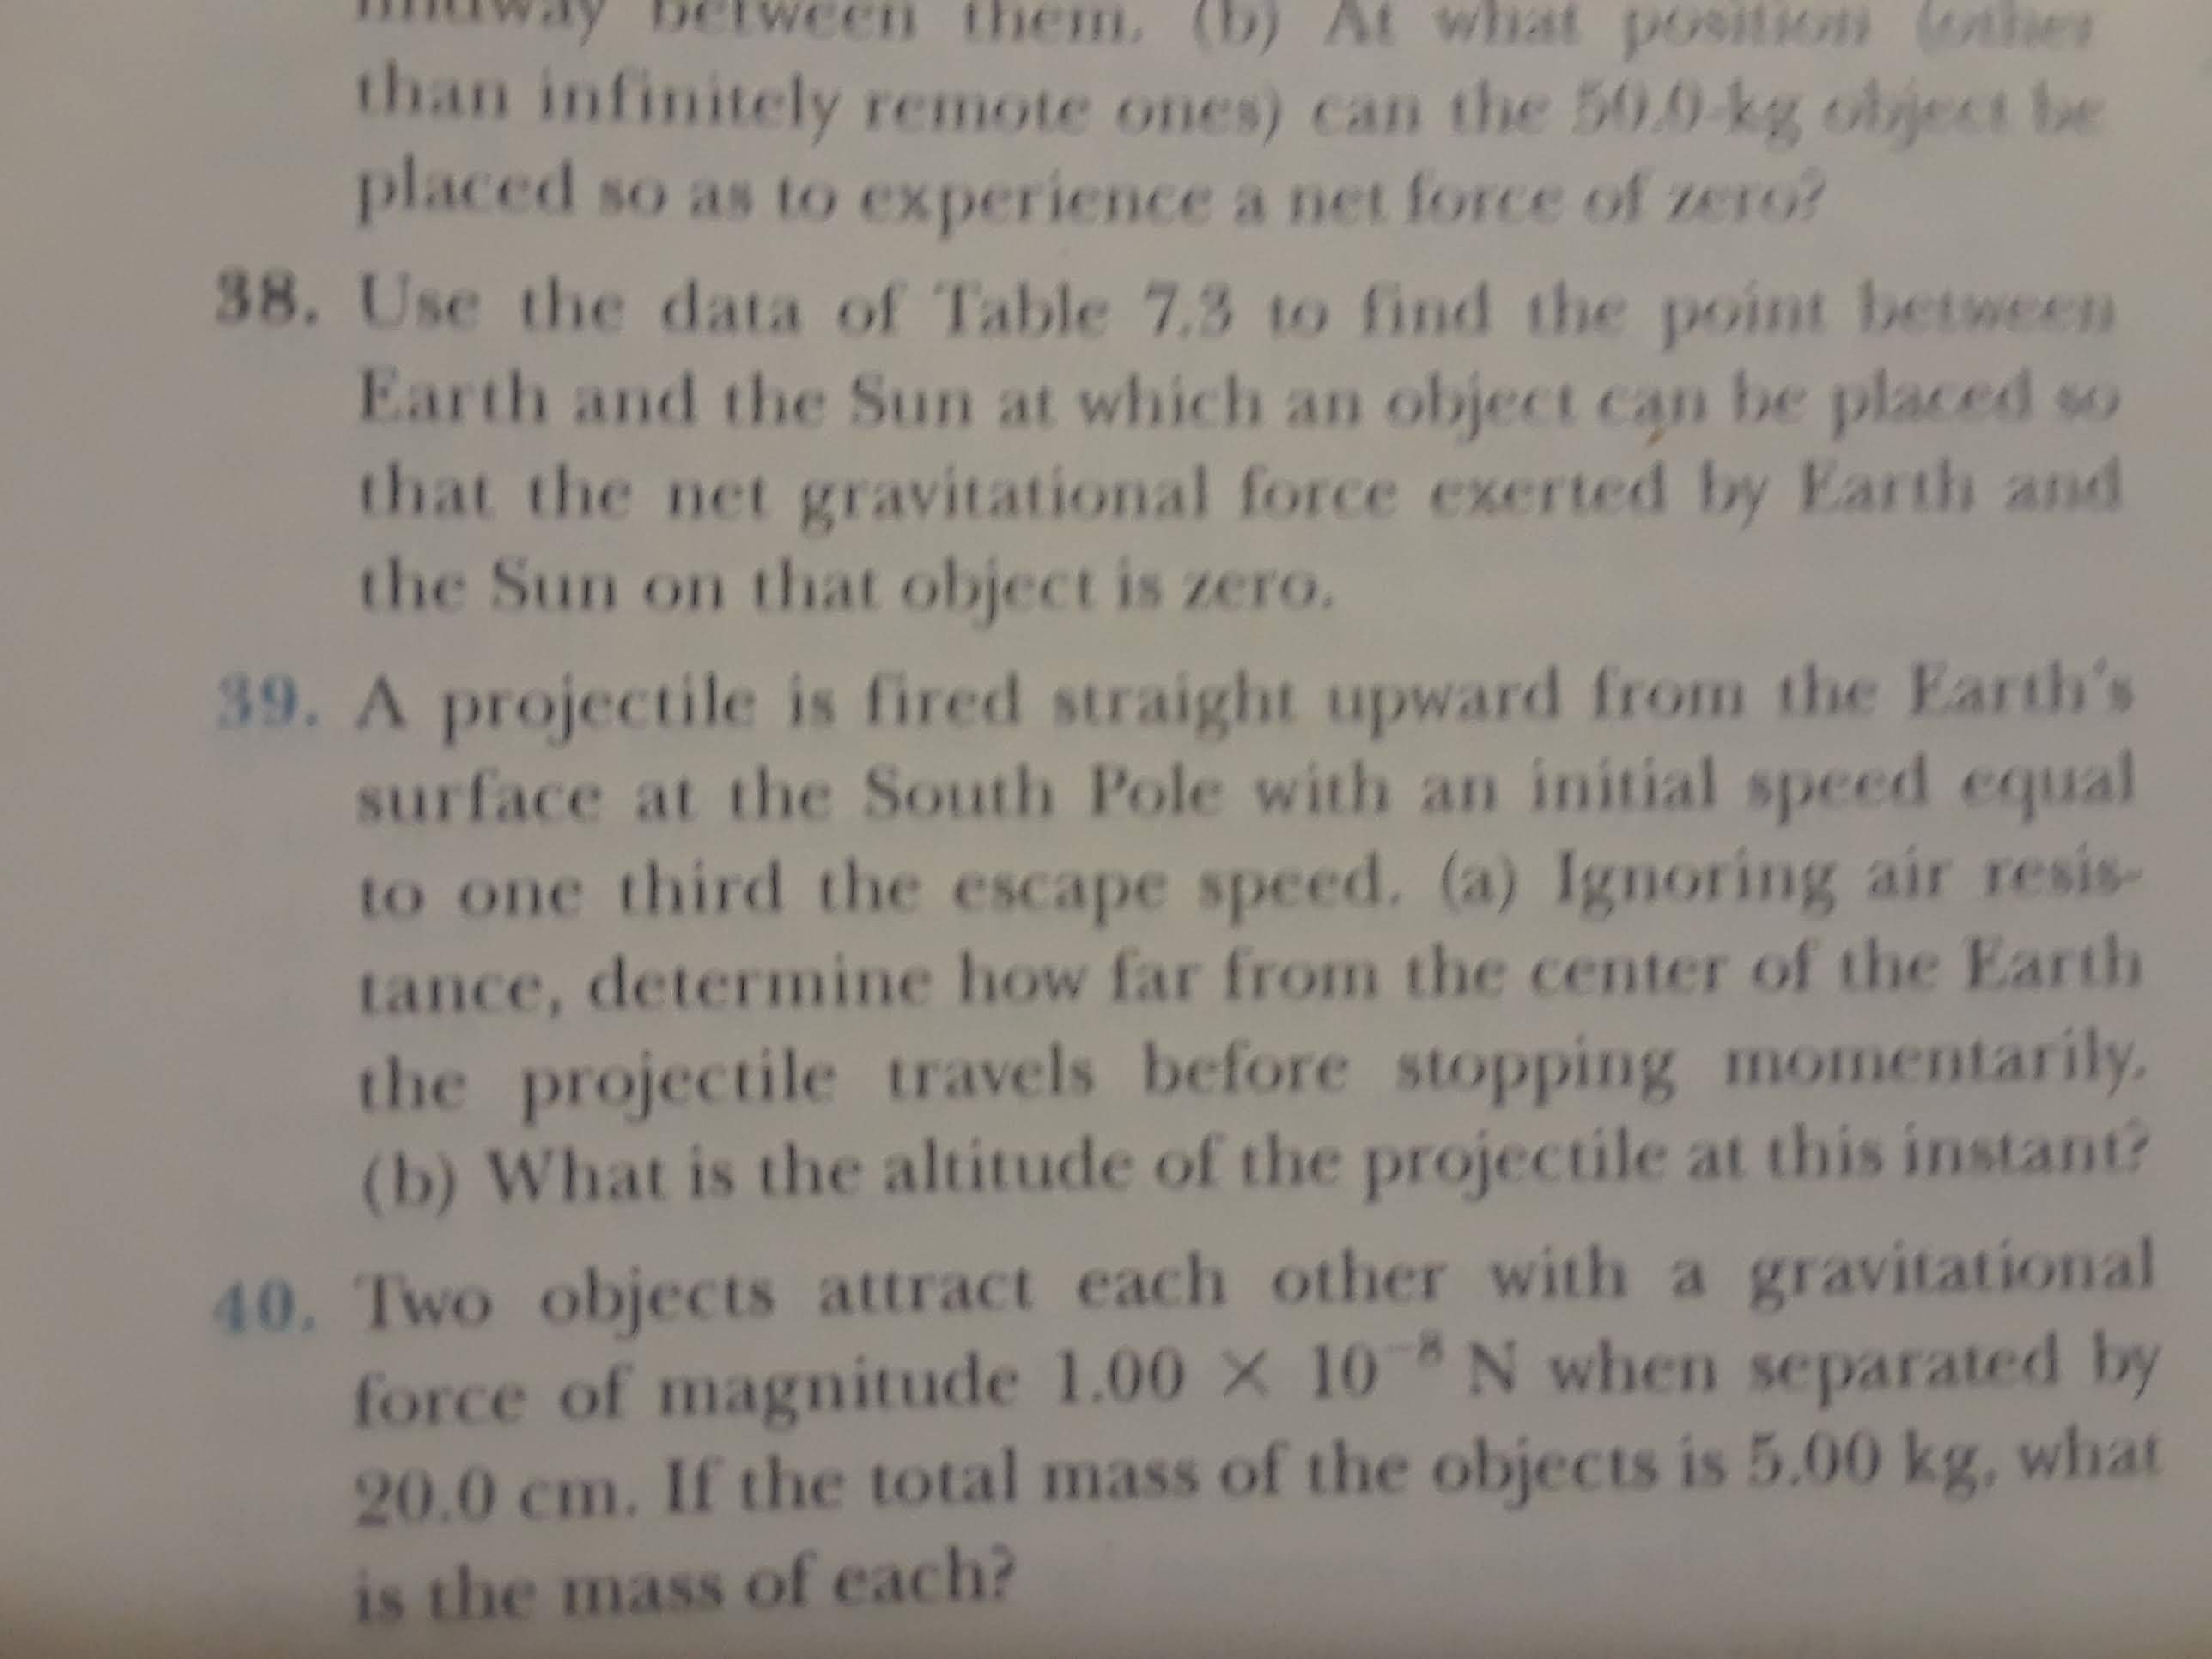 them. (b) At what po9ition (othhe than infinitely remote ones) can the 50.0-kg object be placed so as to experience a net force of zero? 38. Use the data of Table 7.3 to find the point between Earth and the Sun at which an object can be placed so that the net gravitational force exerted by Earth and the Sun on that object is zero. 39. A projectile is fired straight upward from the Earth's surface at the South Pole with an initial speed equal to one third the escape speed. (a) Ignoring air resis- tance, determine how far from the center of the Earth the projectile travels before stopping momentarily (b) What is the altitude of the projectile at this instant? 40. Two objects attract each other with a gravitational force of magnitude 1.00 X 10 N when separated by 20.0 cm. If the total mass of the objects is 5.00 kg, what is the mass of each?